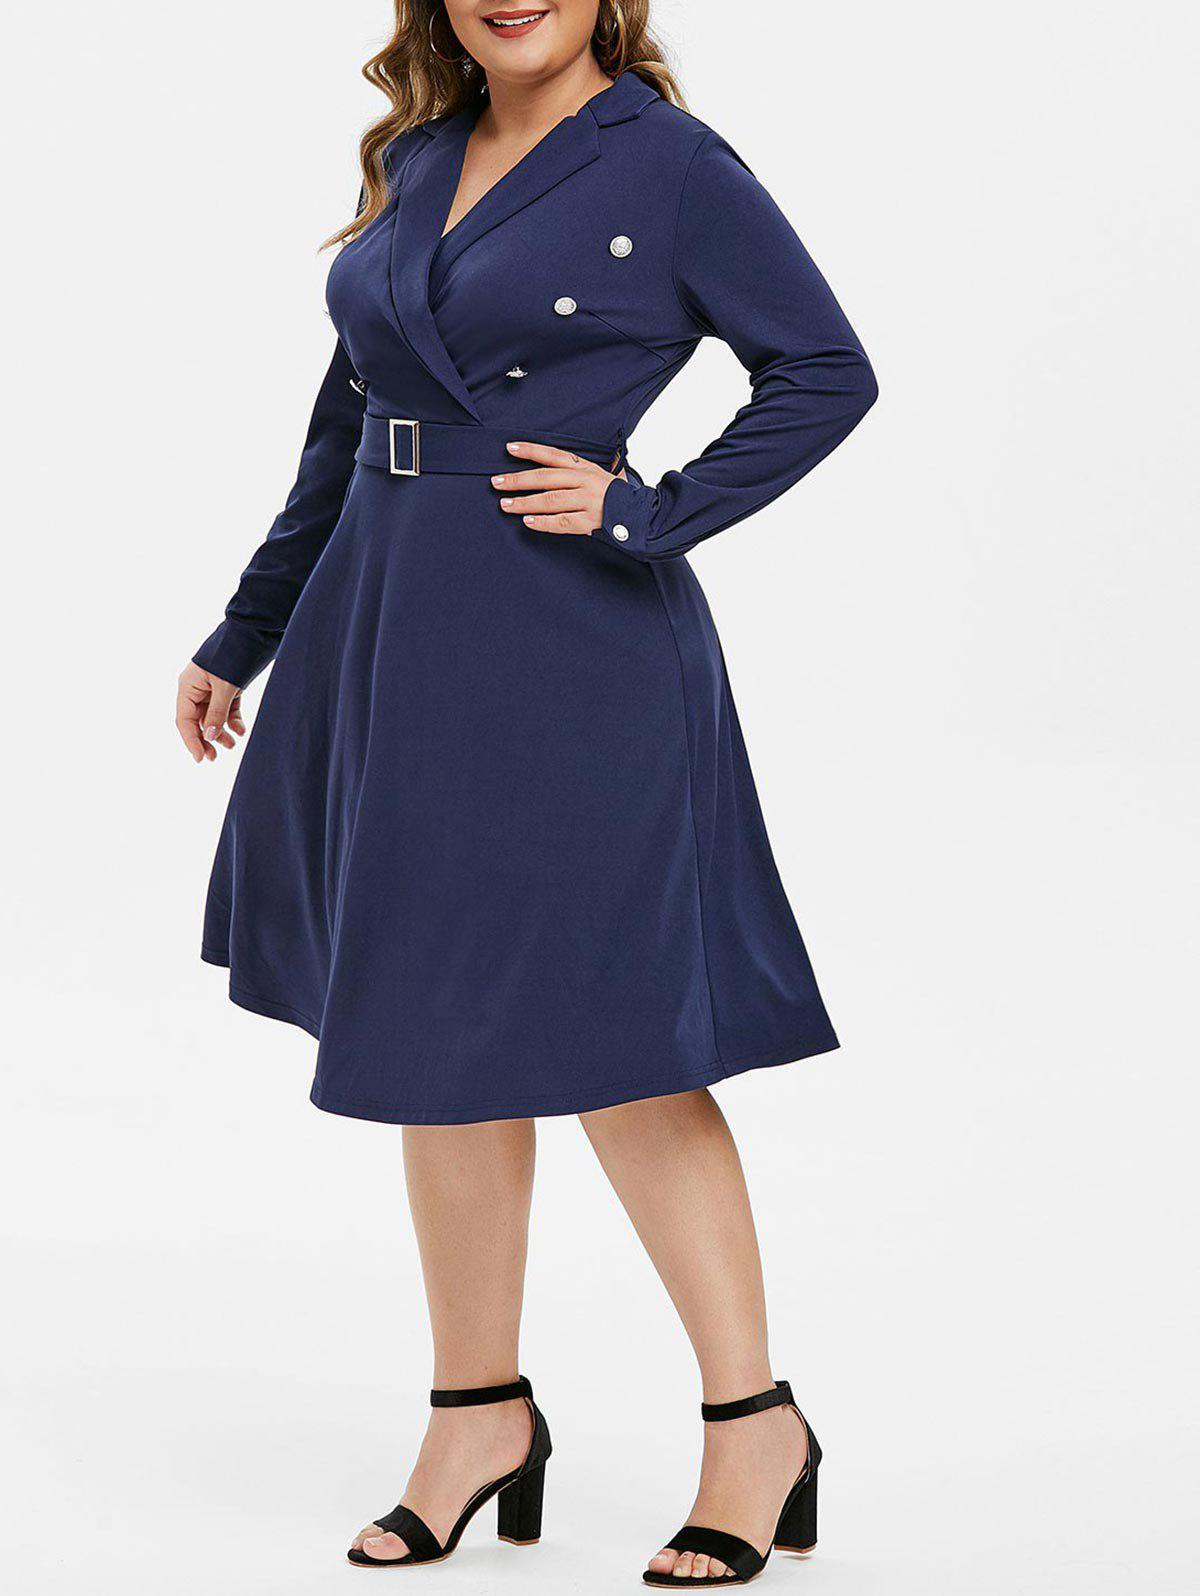 Plus Size Lapel Buttons A Line Dress - CADETBLUE L